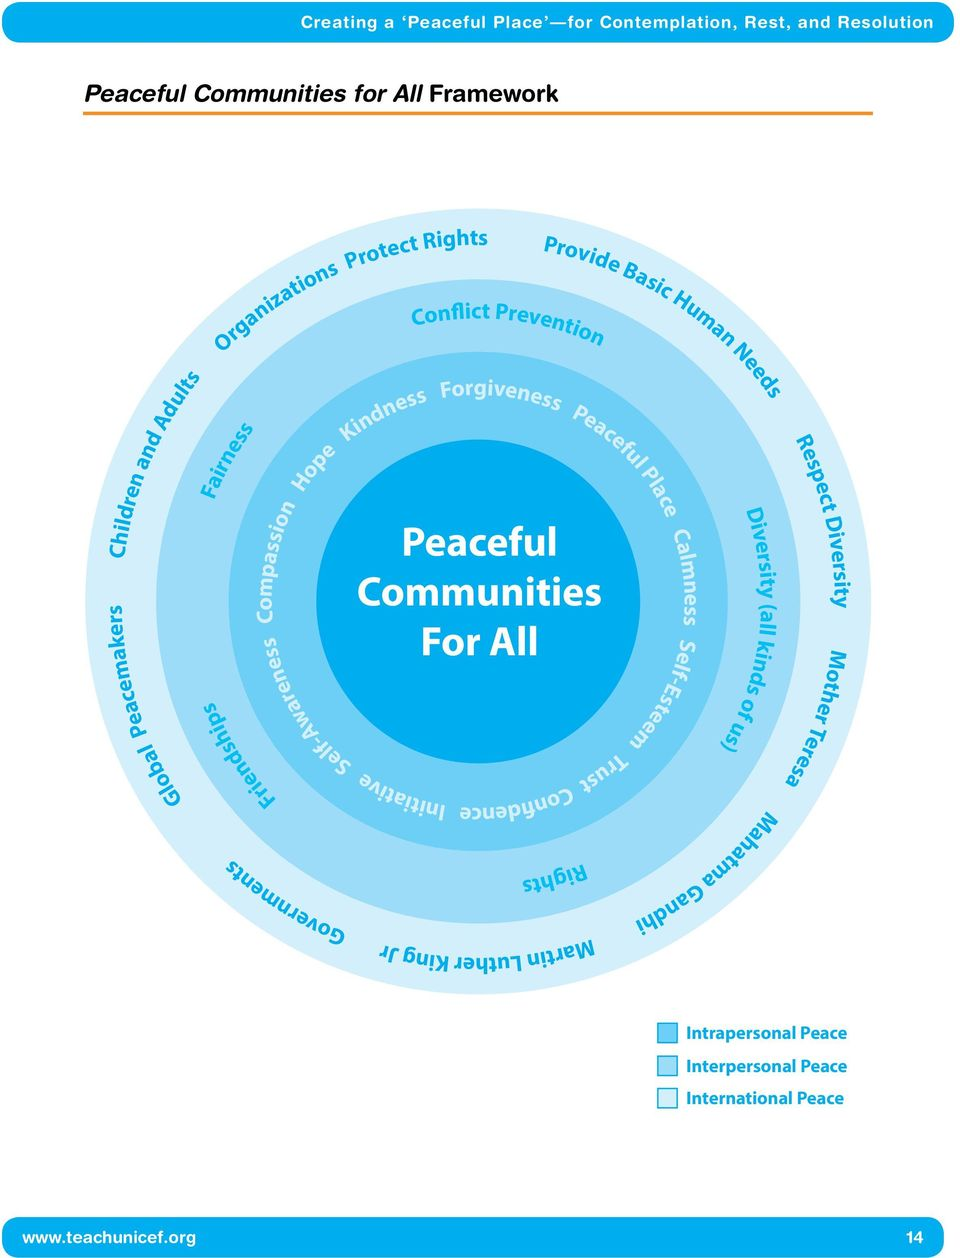 Peaceful Communities For All Confidence Rights Provide Basic Human Needs Peaceful Place Self-Esteem Trust Mahatma Gandhi Calmness Diversity (all